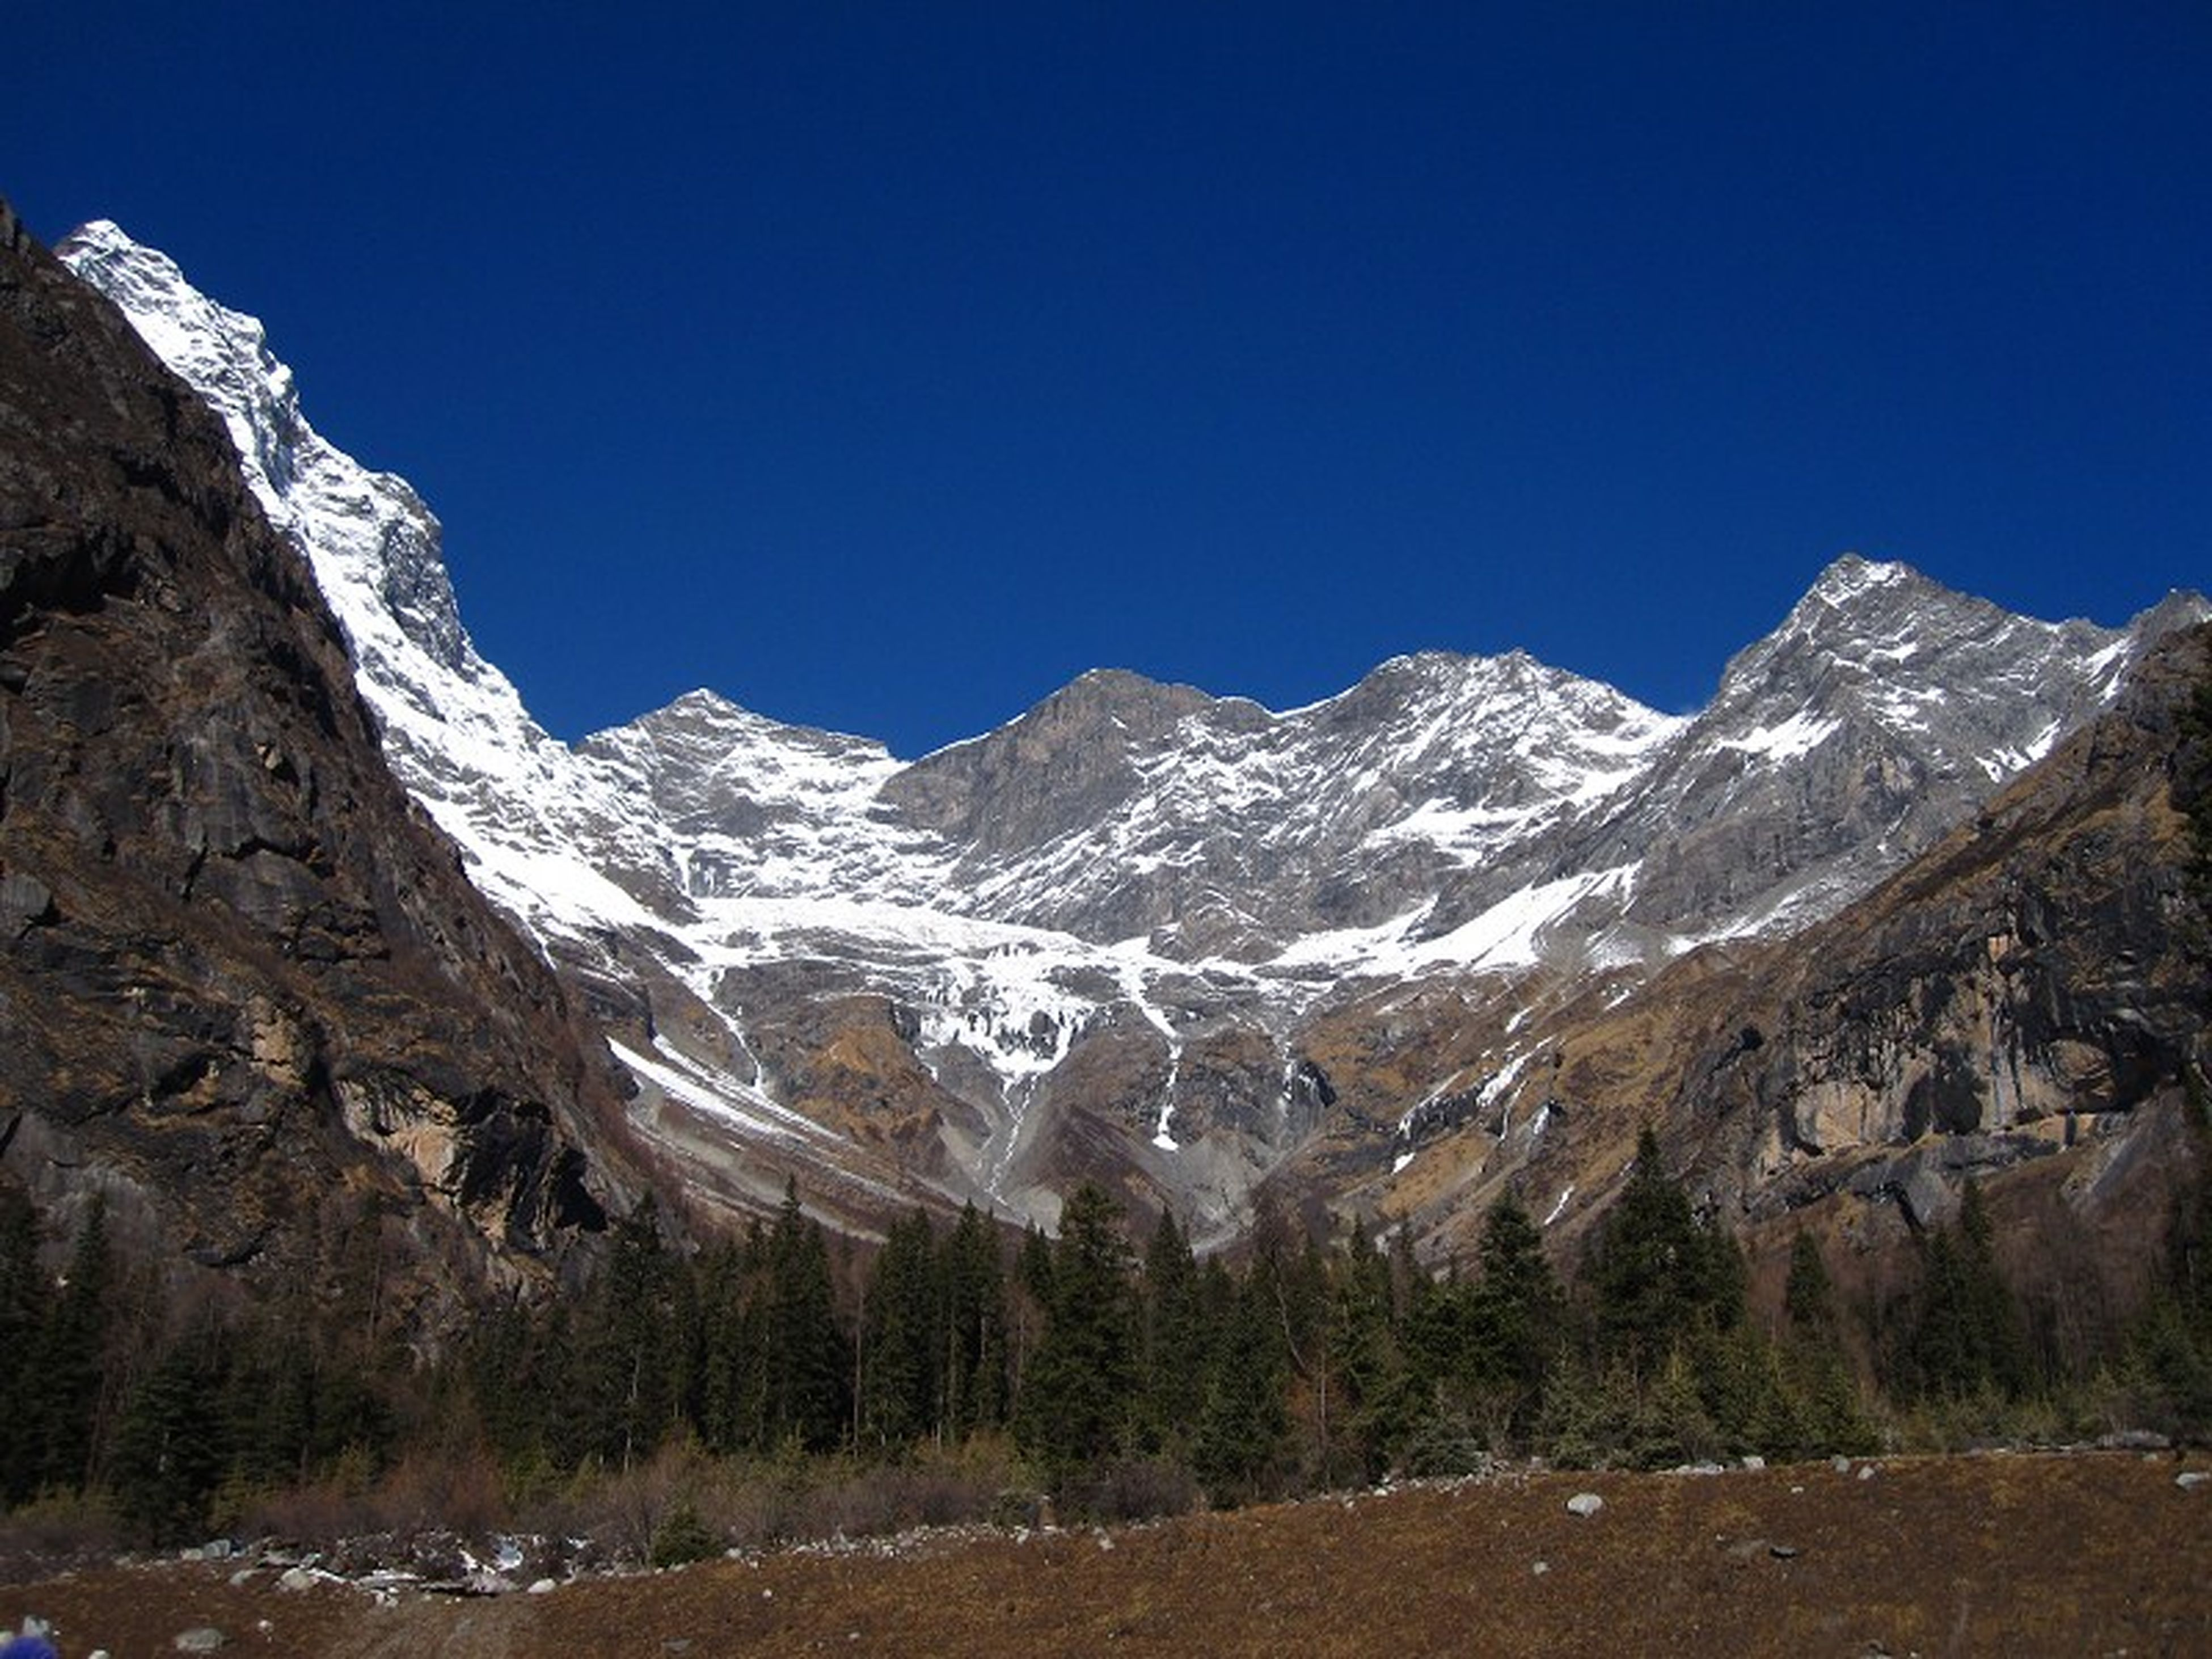 mountain, snow, winter, cold temperature, clear sky, mountain range, blue, season, snowcapped mountain, tranquil scene, scenics, tranquility, beauty in nature, copy space, landscape, nature, non-urban scene, rocky mountains, weather, rock - object